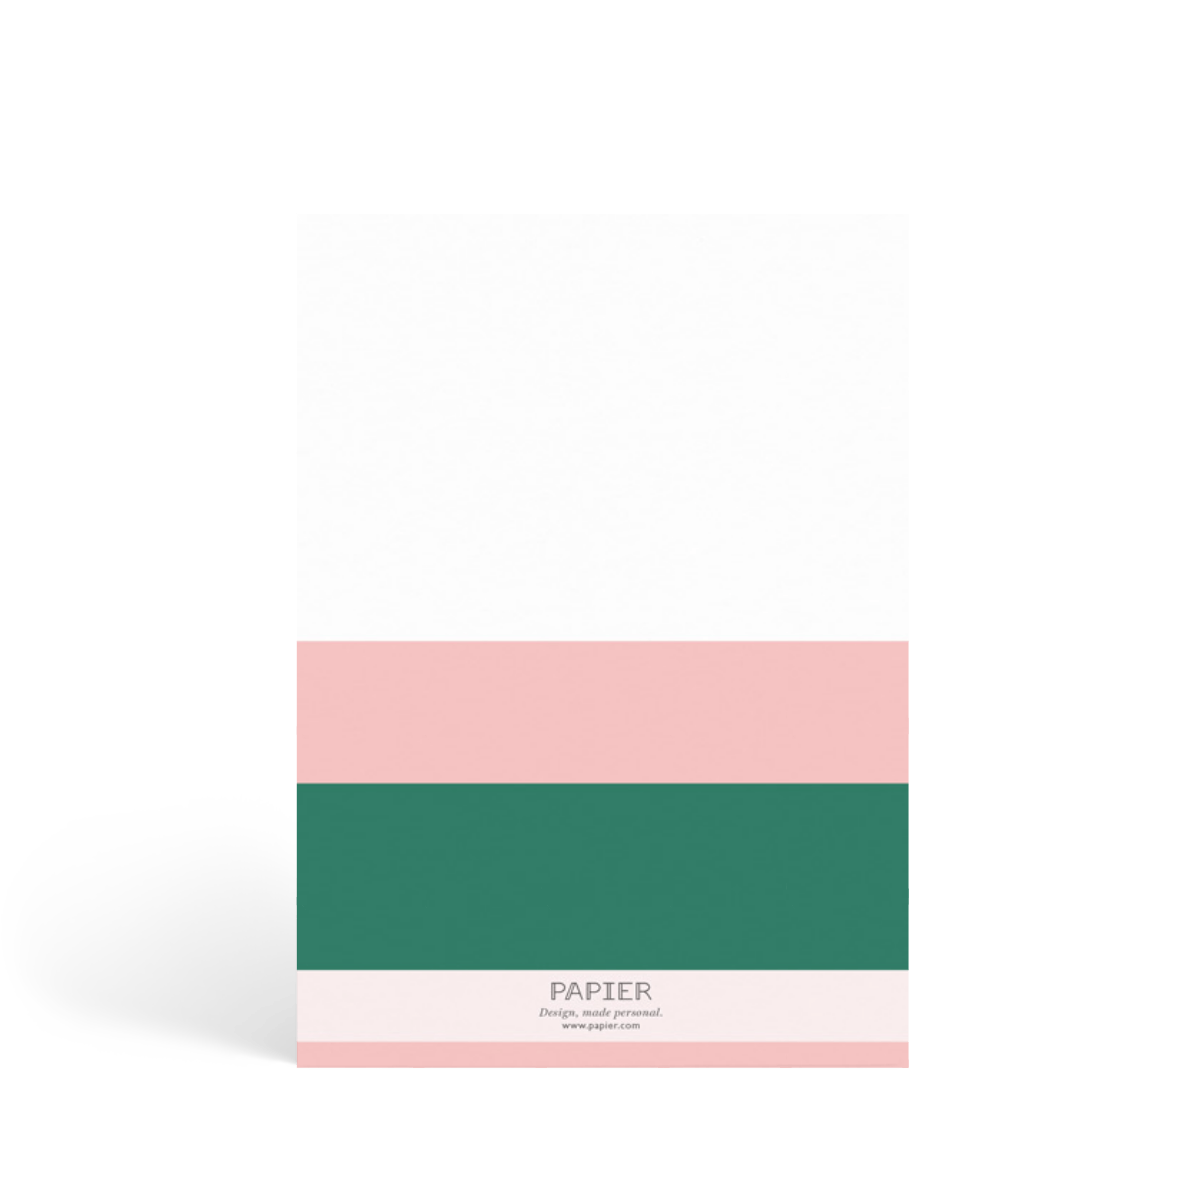 Https%3a%2f%2fwww.papier.com%2fproduct image%2f51762%2f5%2fstriped colourblock 12661 back 1541071957.png?ixlib=rb 1.1